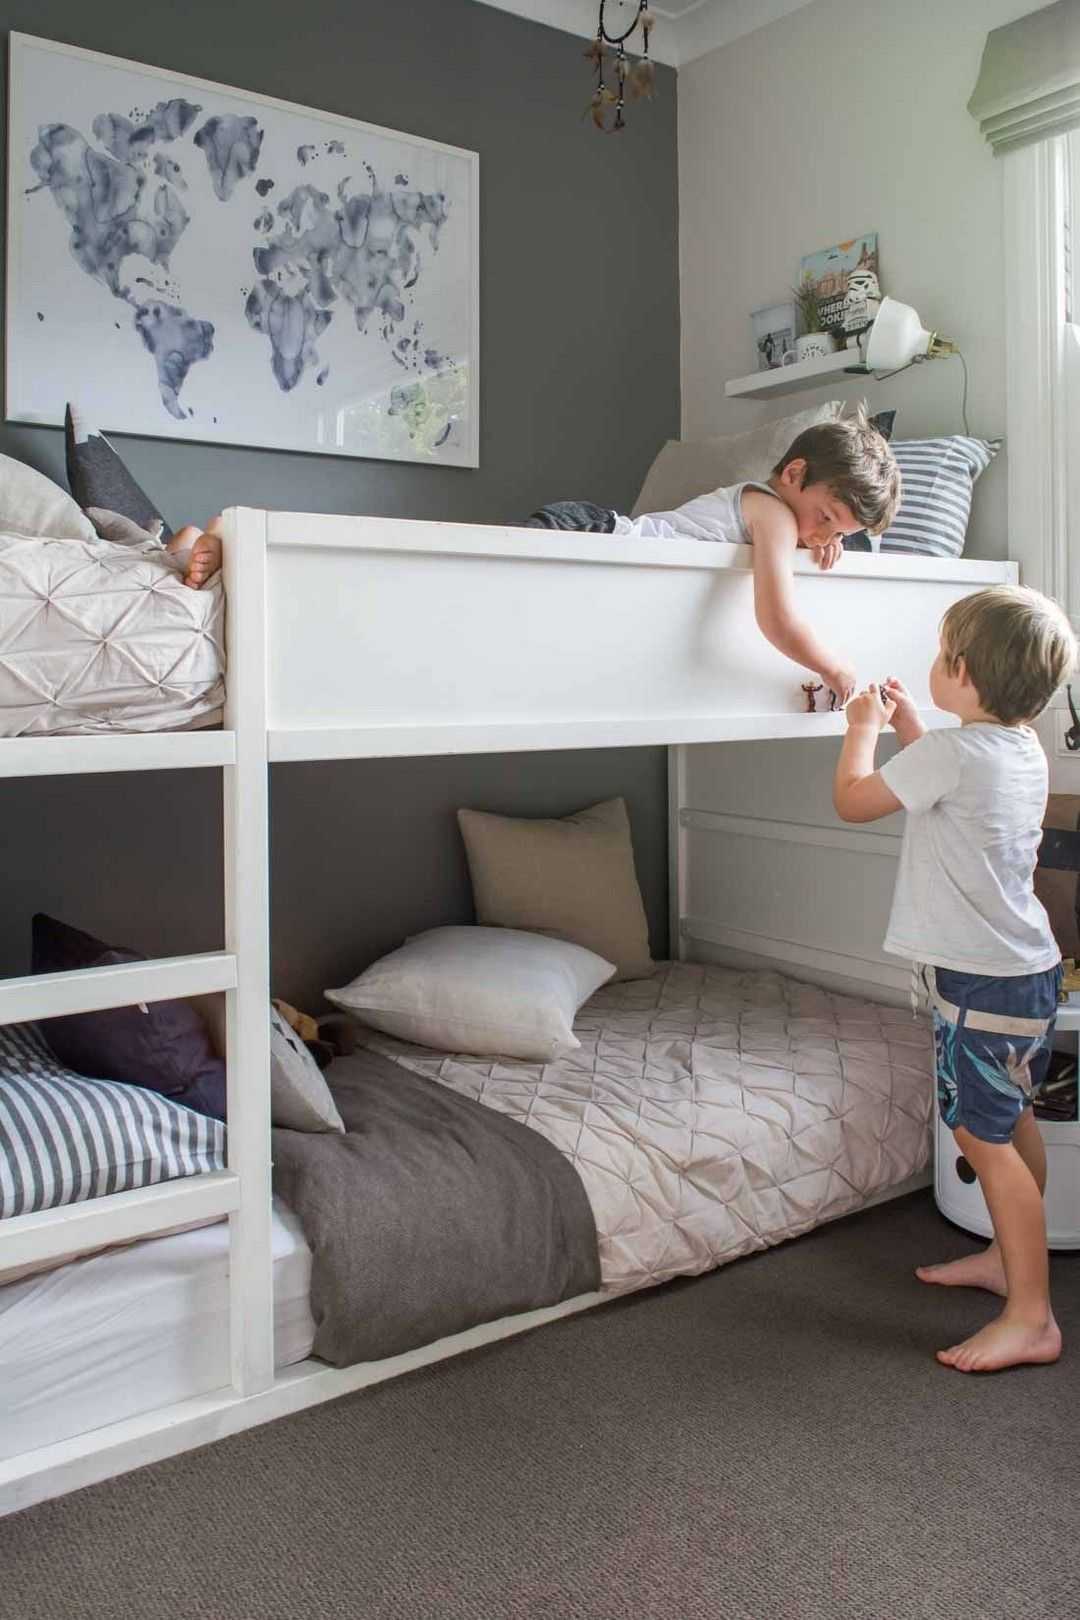 40 Kids Rooms: Shared Bedroom Ideas images